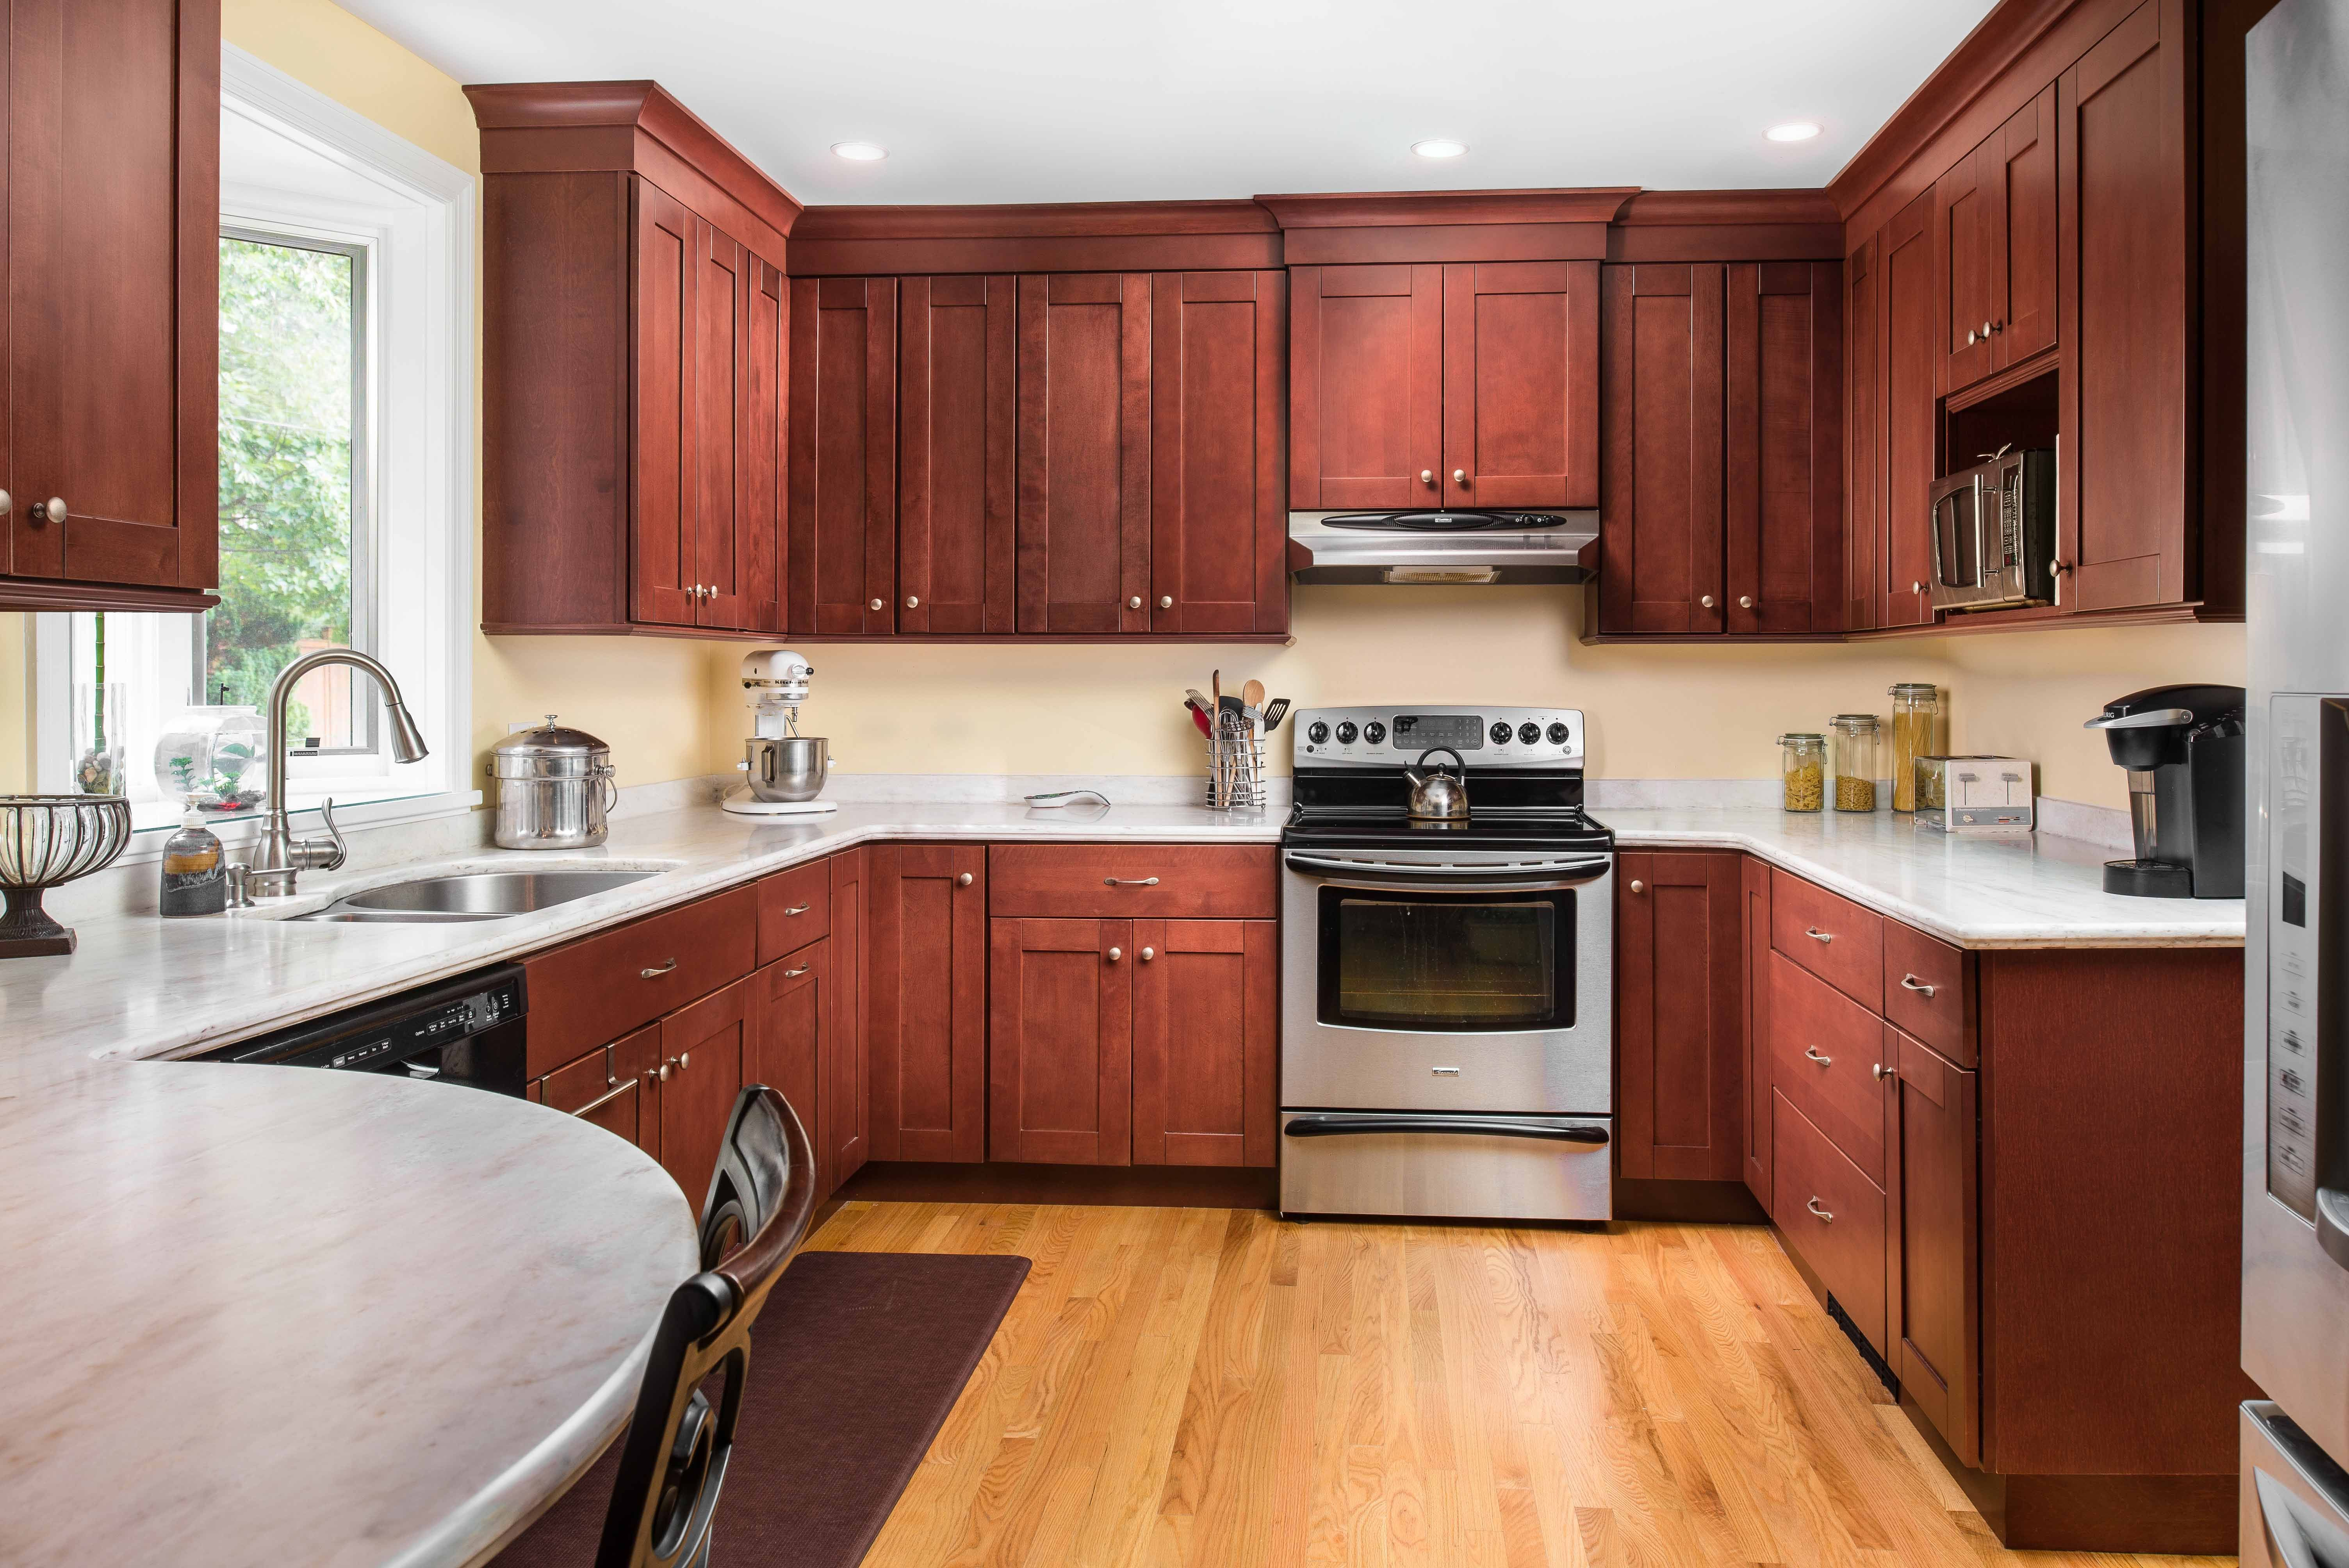 Why shaker style kitchen cabinets never go out of style ...